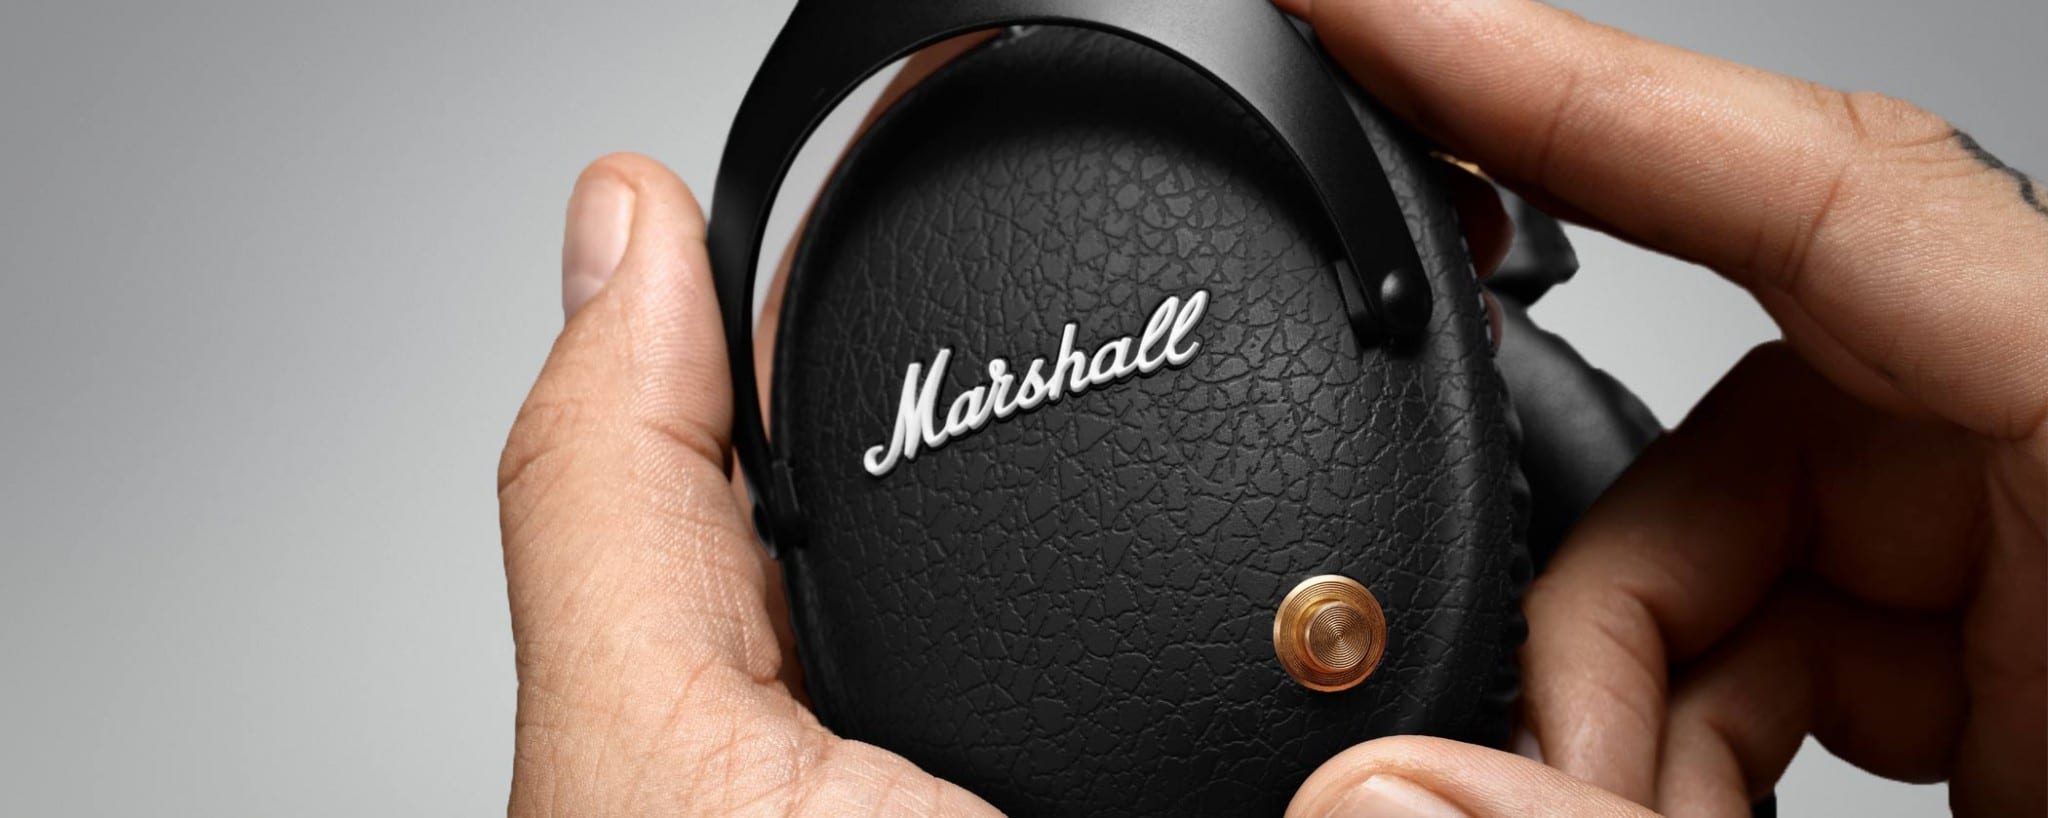 marshall_headphones_slide__monitor_bluetooth__02_3800